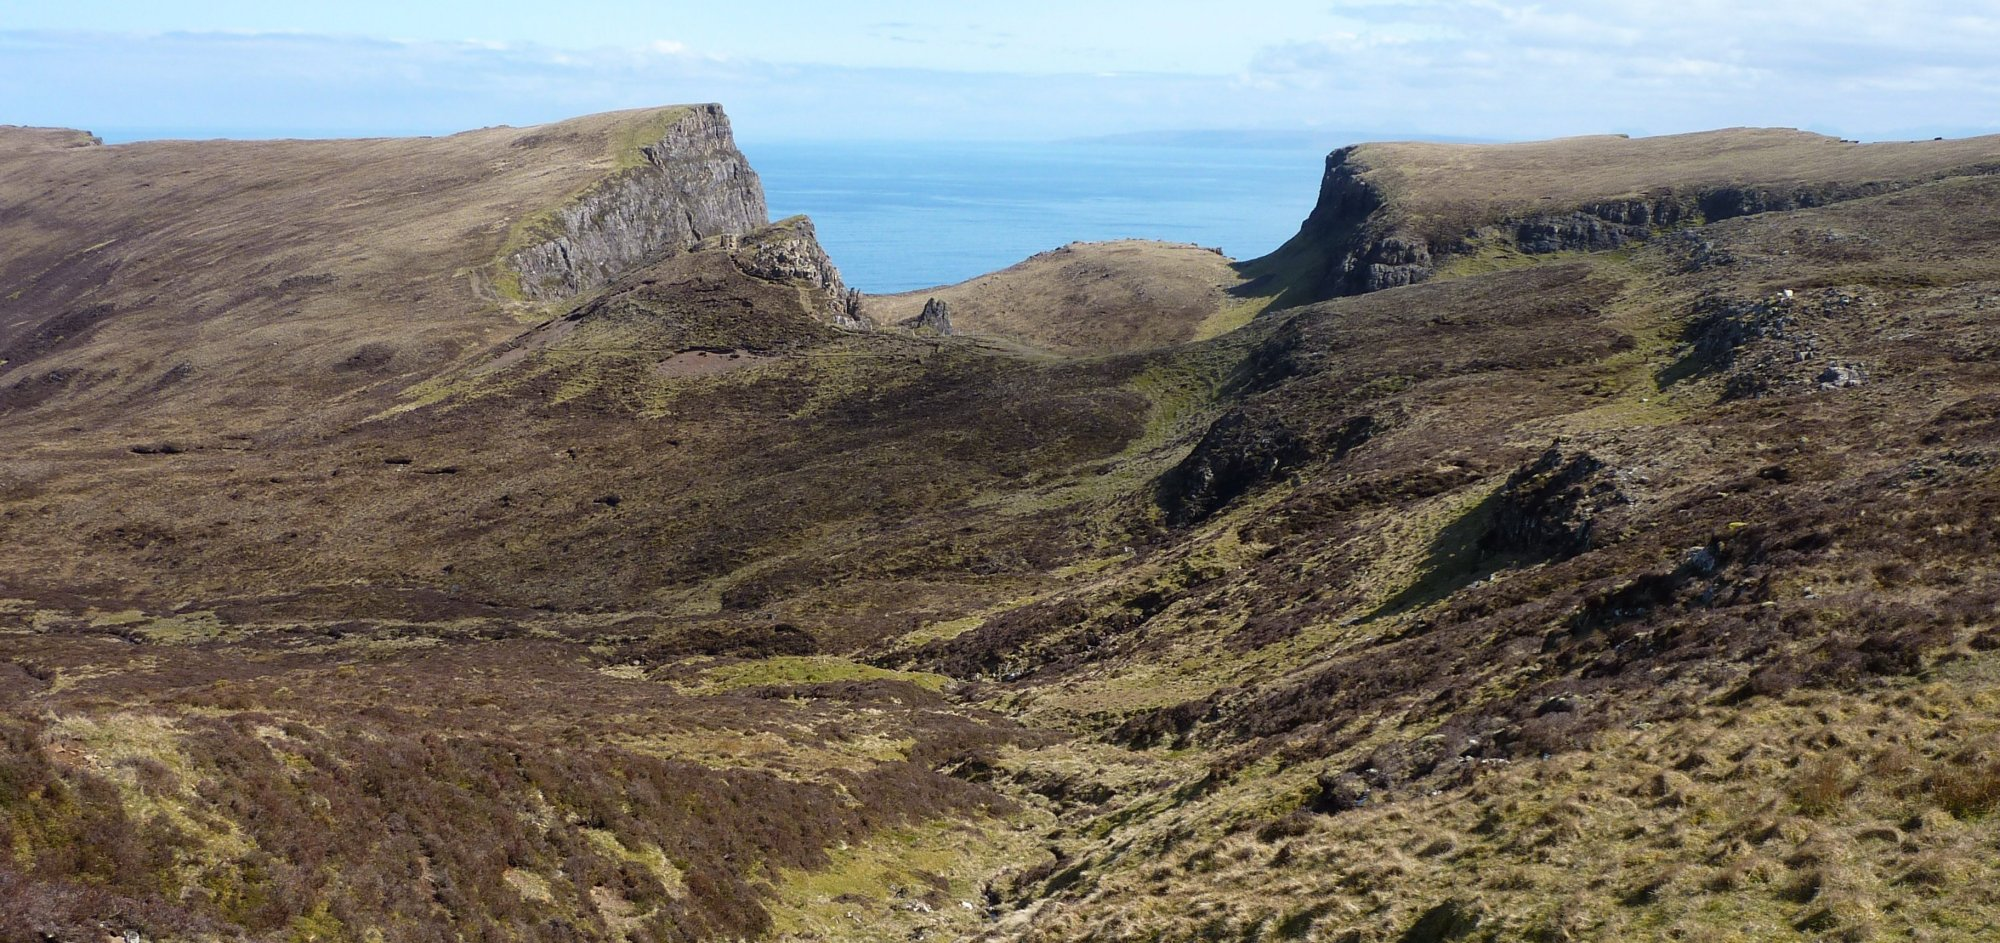 The beautiful landscape of the Quiraing ridge, beneath and behind me